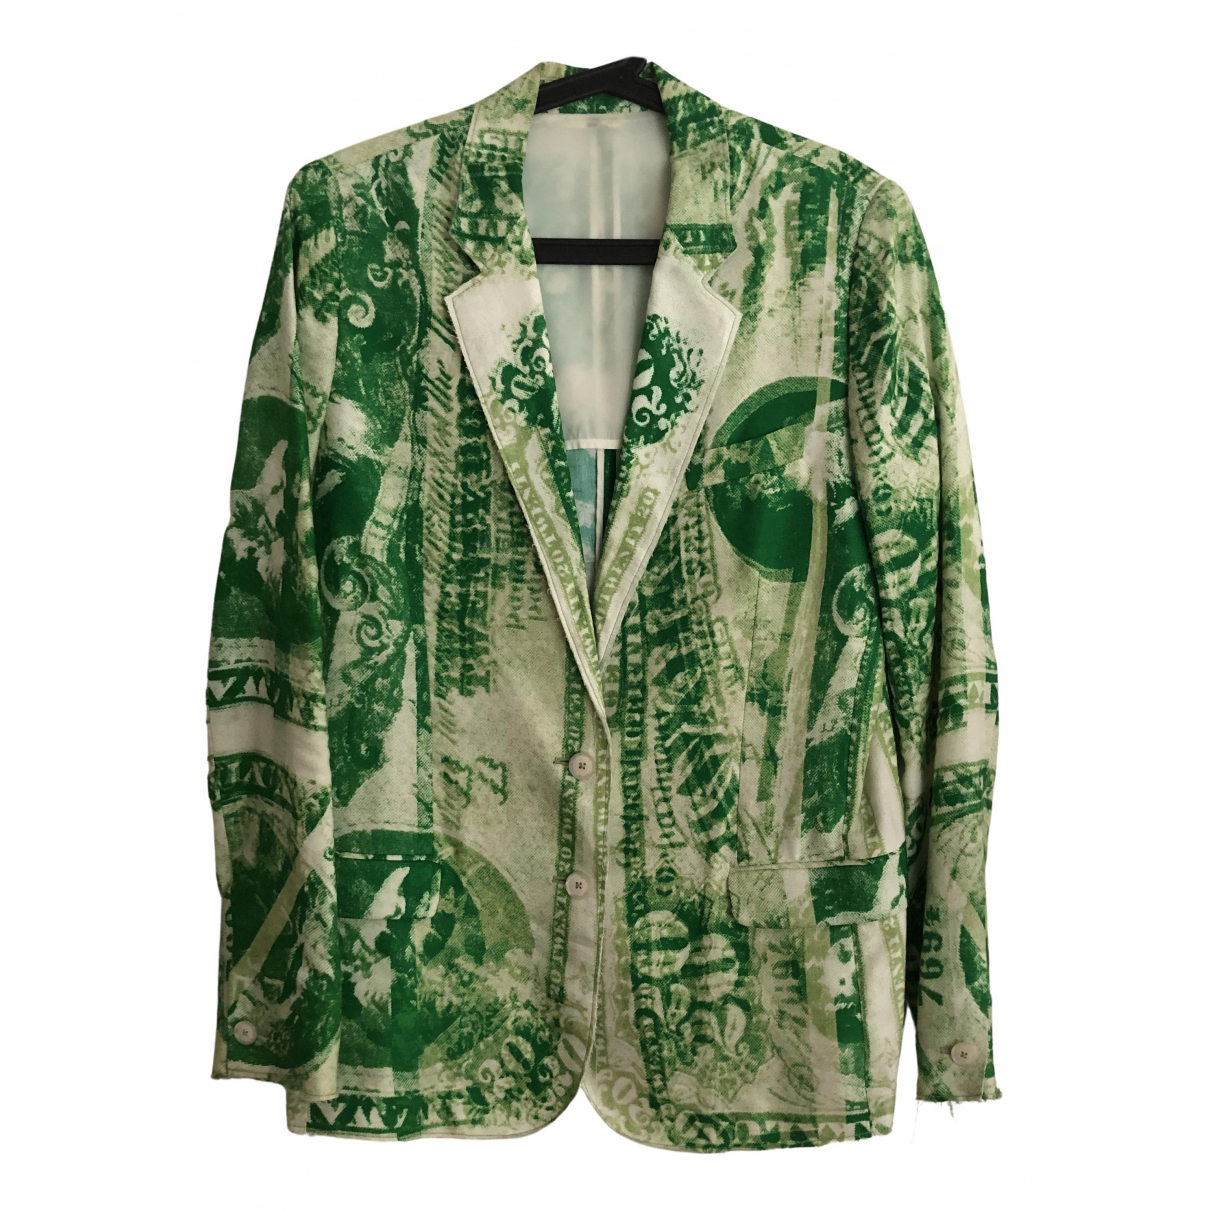 Acne Studios \N Green Cotton jacket for Women M International